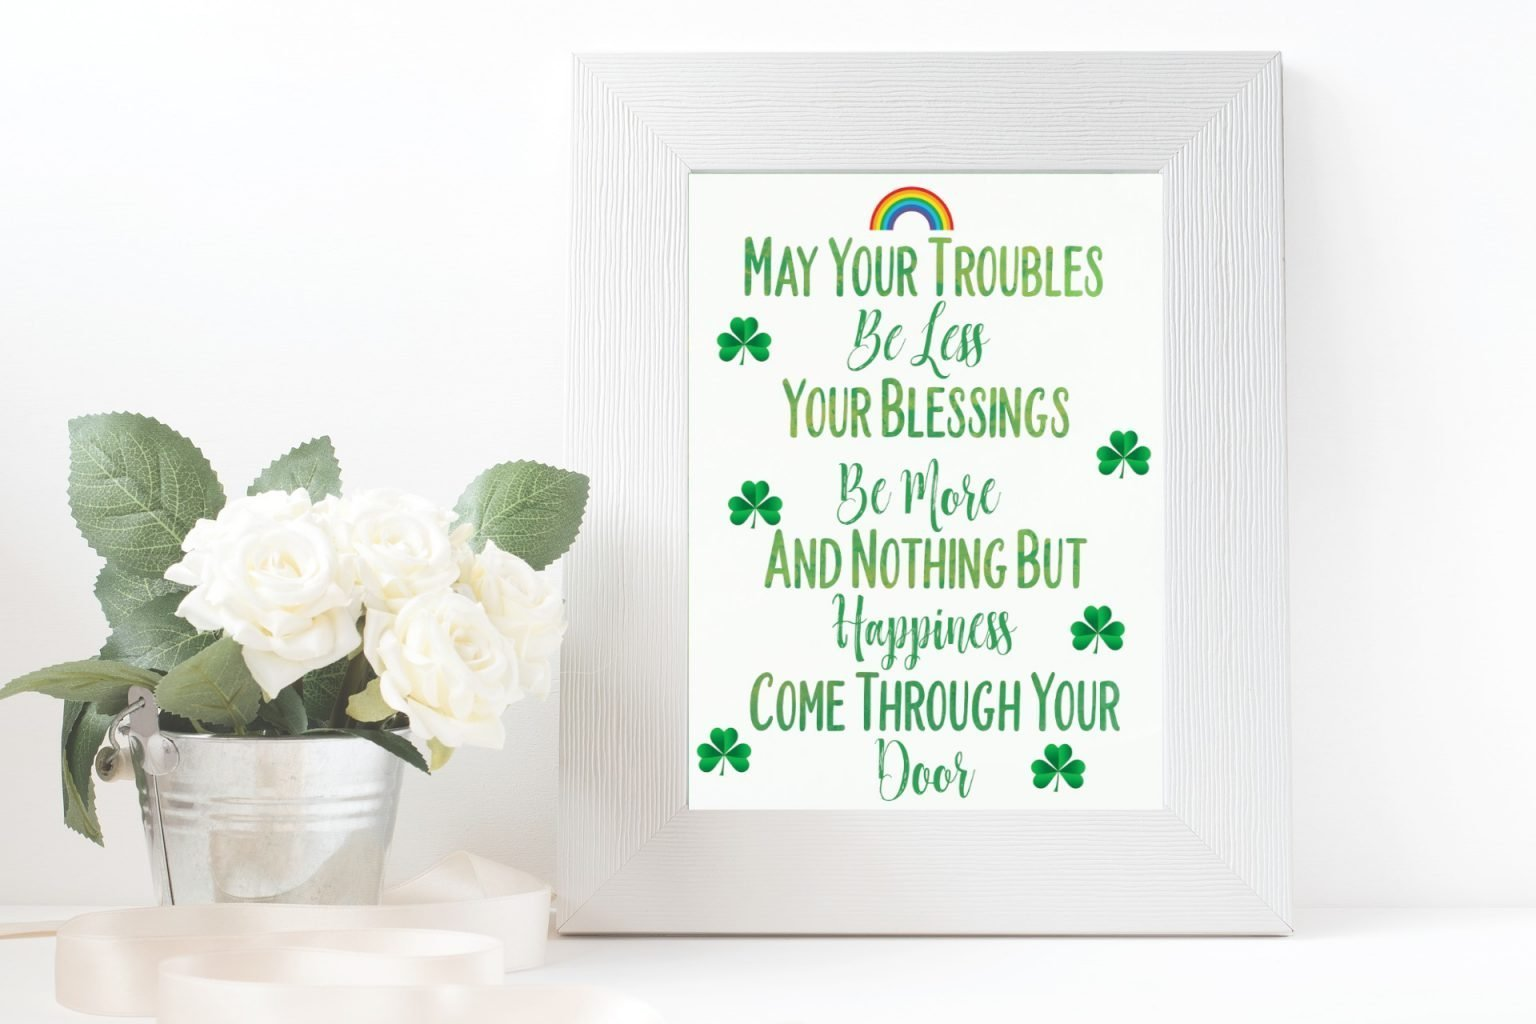 graphic relating to Printable Irish Blessing identify Irish Blessing Free of charge Printable For St. Patricks Working day (or Any